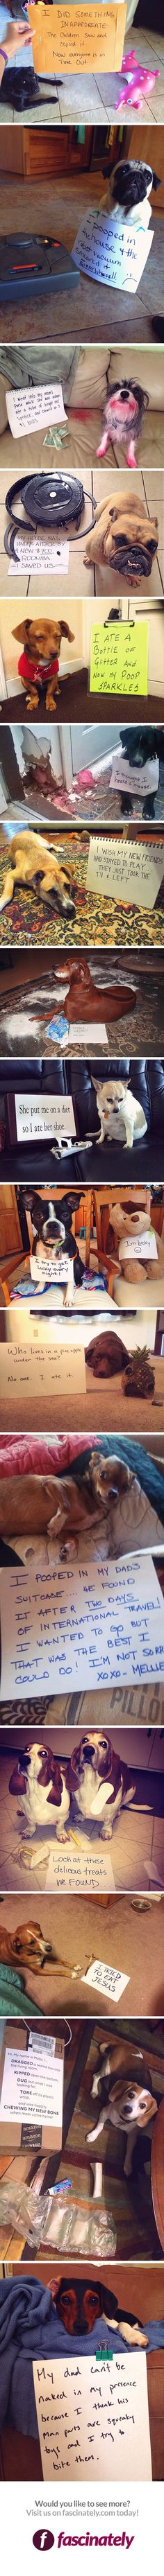 Meet the Naughtiest Dogs of 2014 I laughed so hard! XD